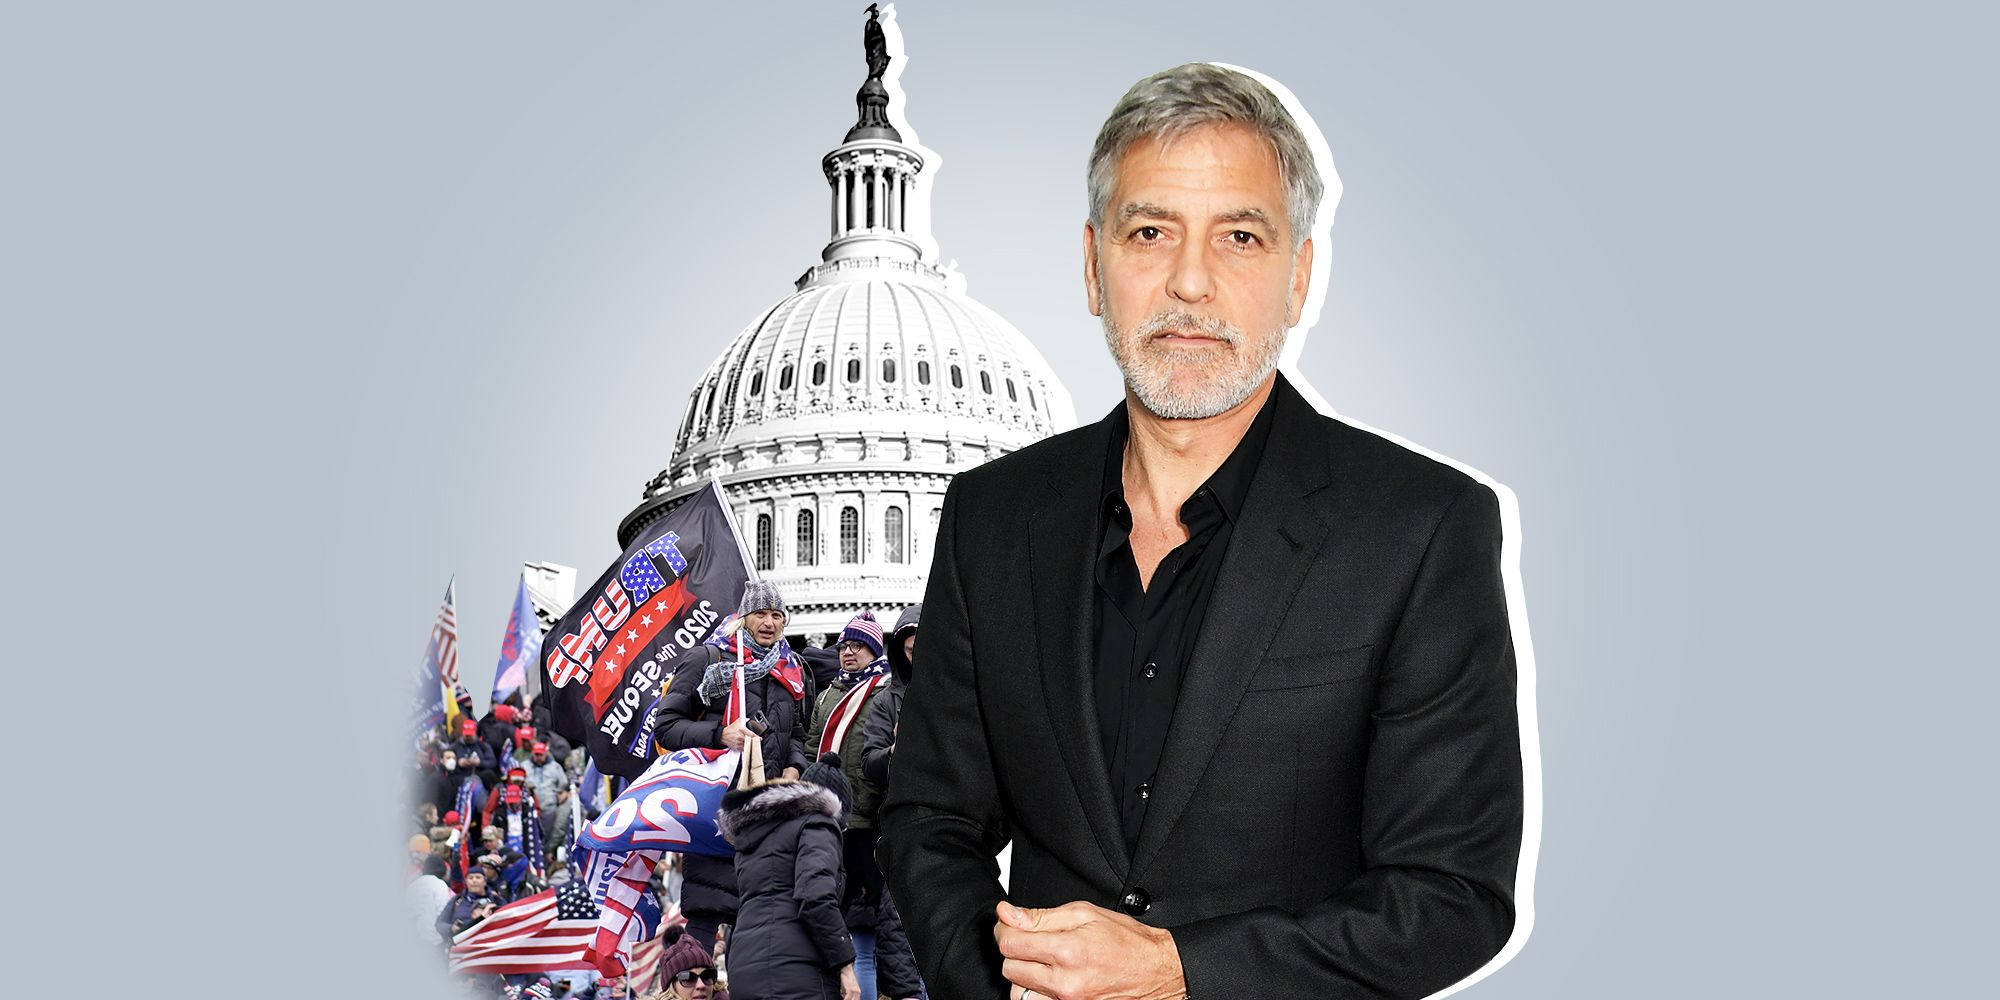 George Clooney Says Trump Will Be in the 'Dustbin of History' Following the Capitol Attacks